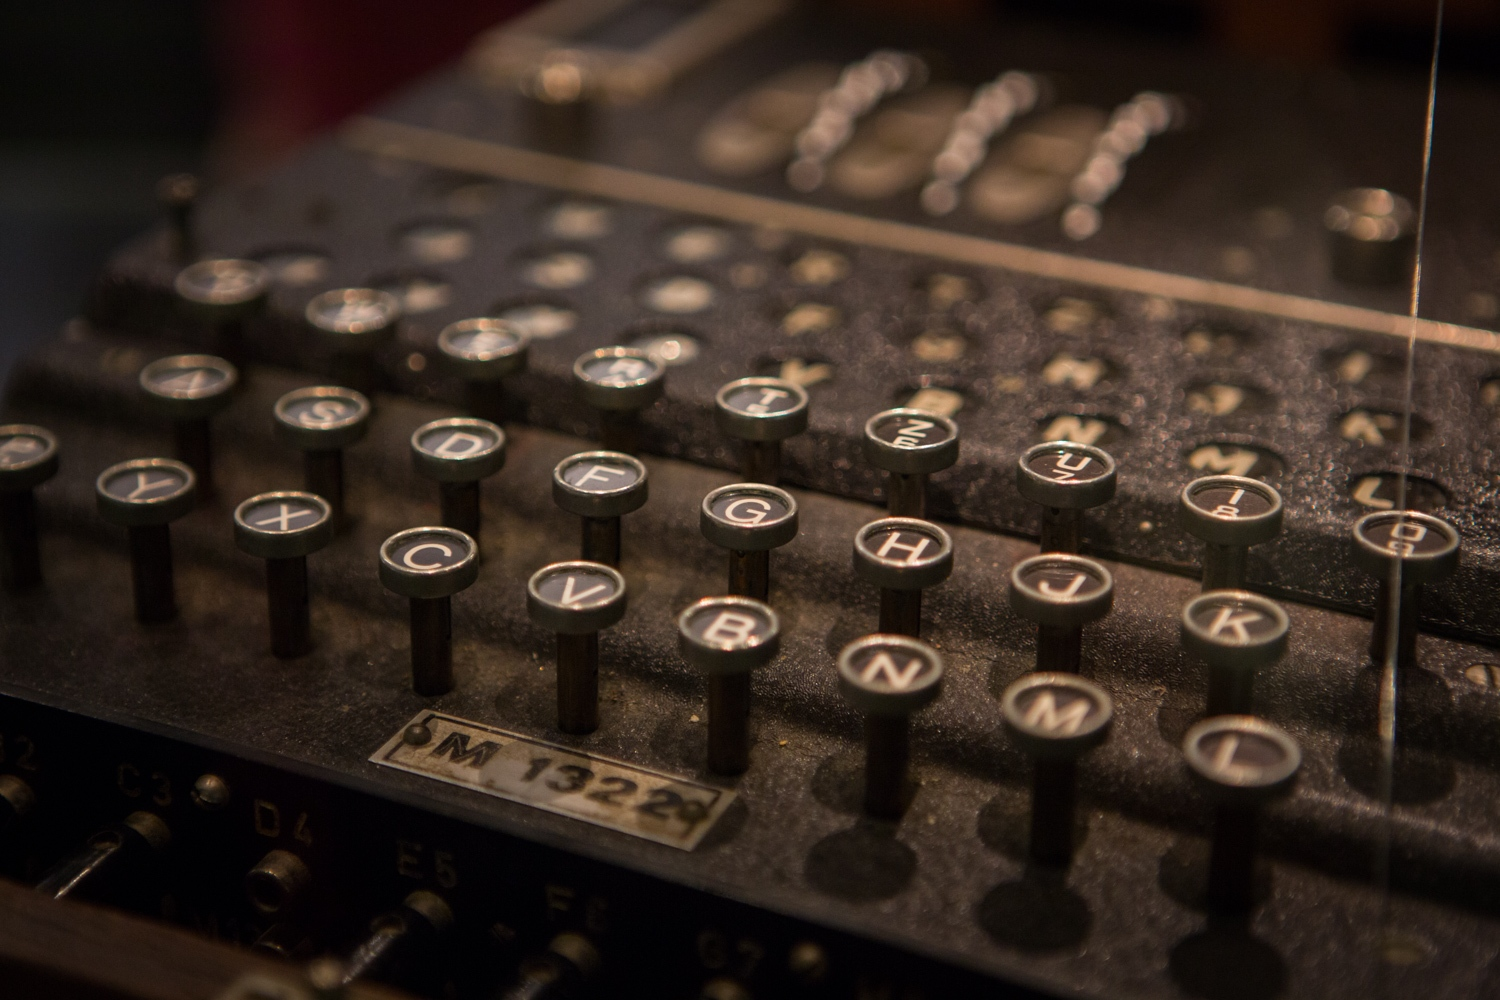 keyboard of an ENIGMA machine at Bletchley Park.